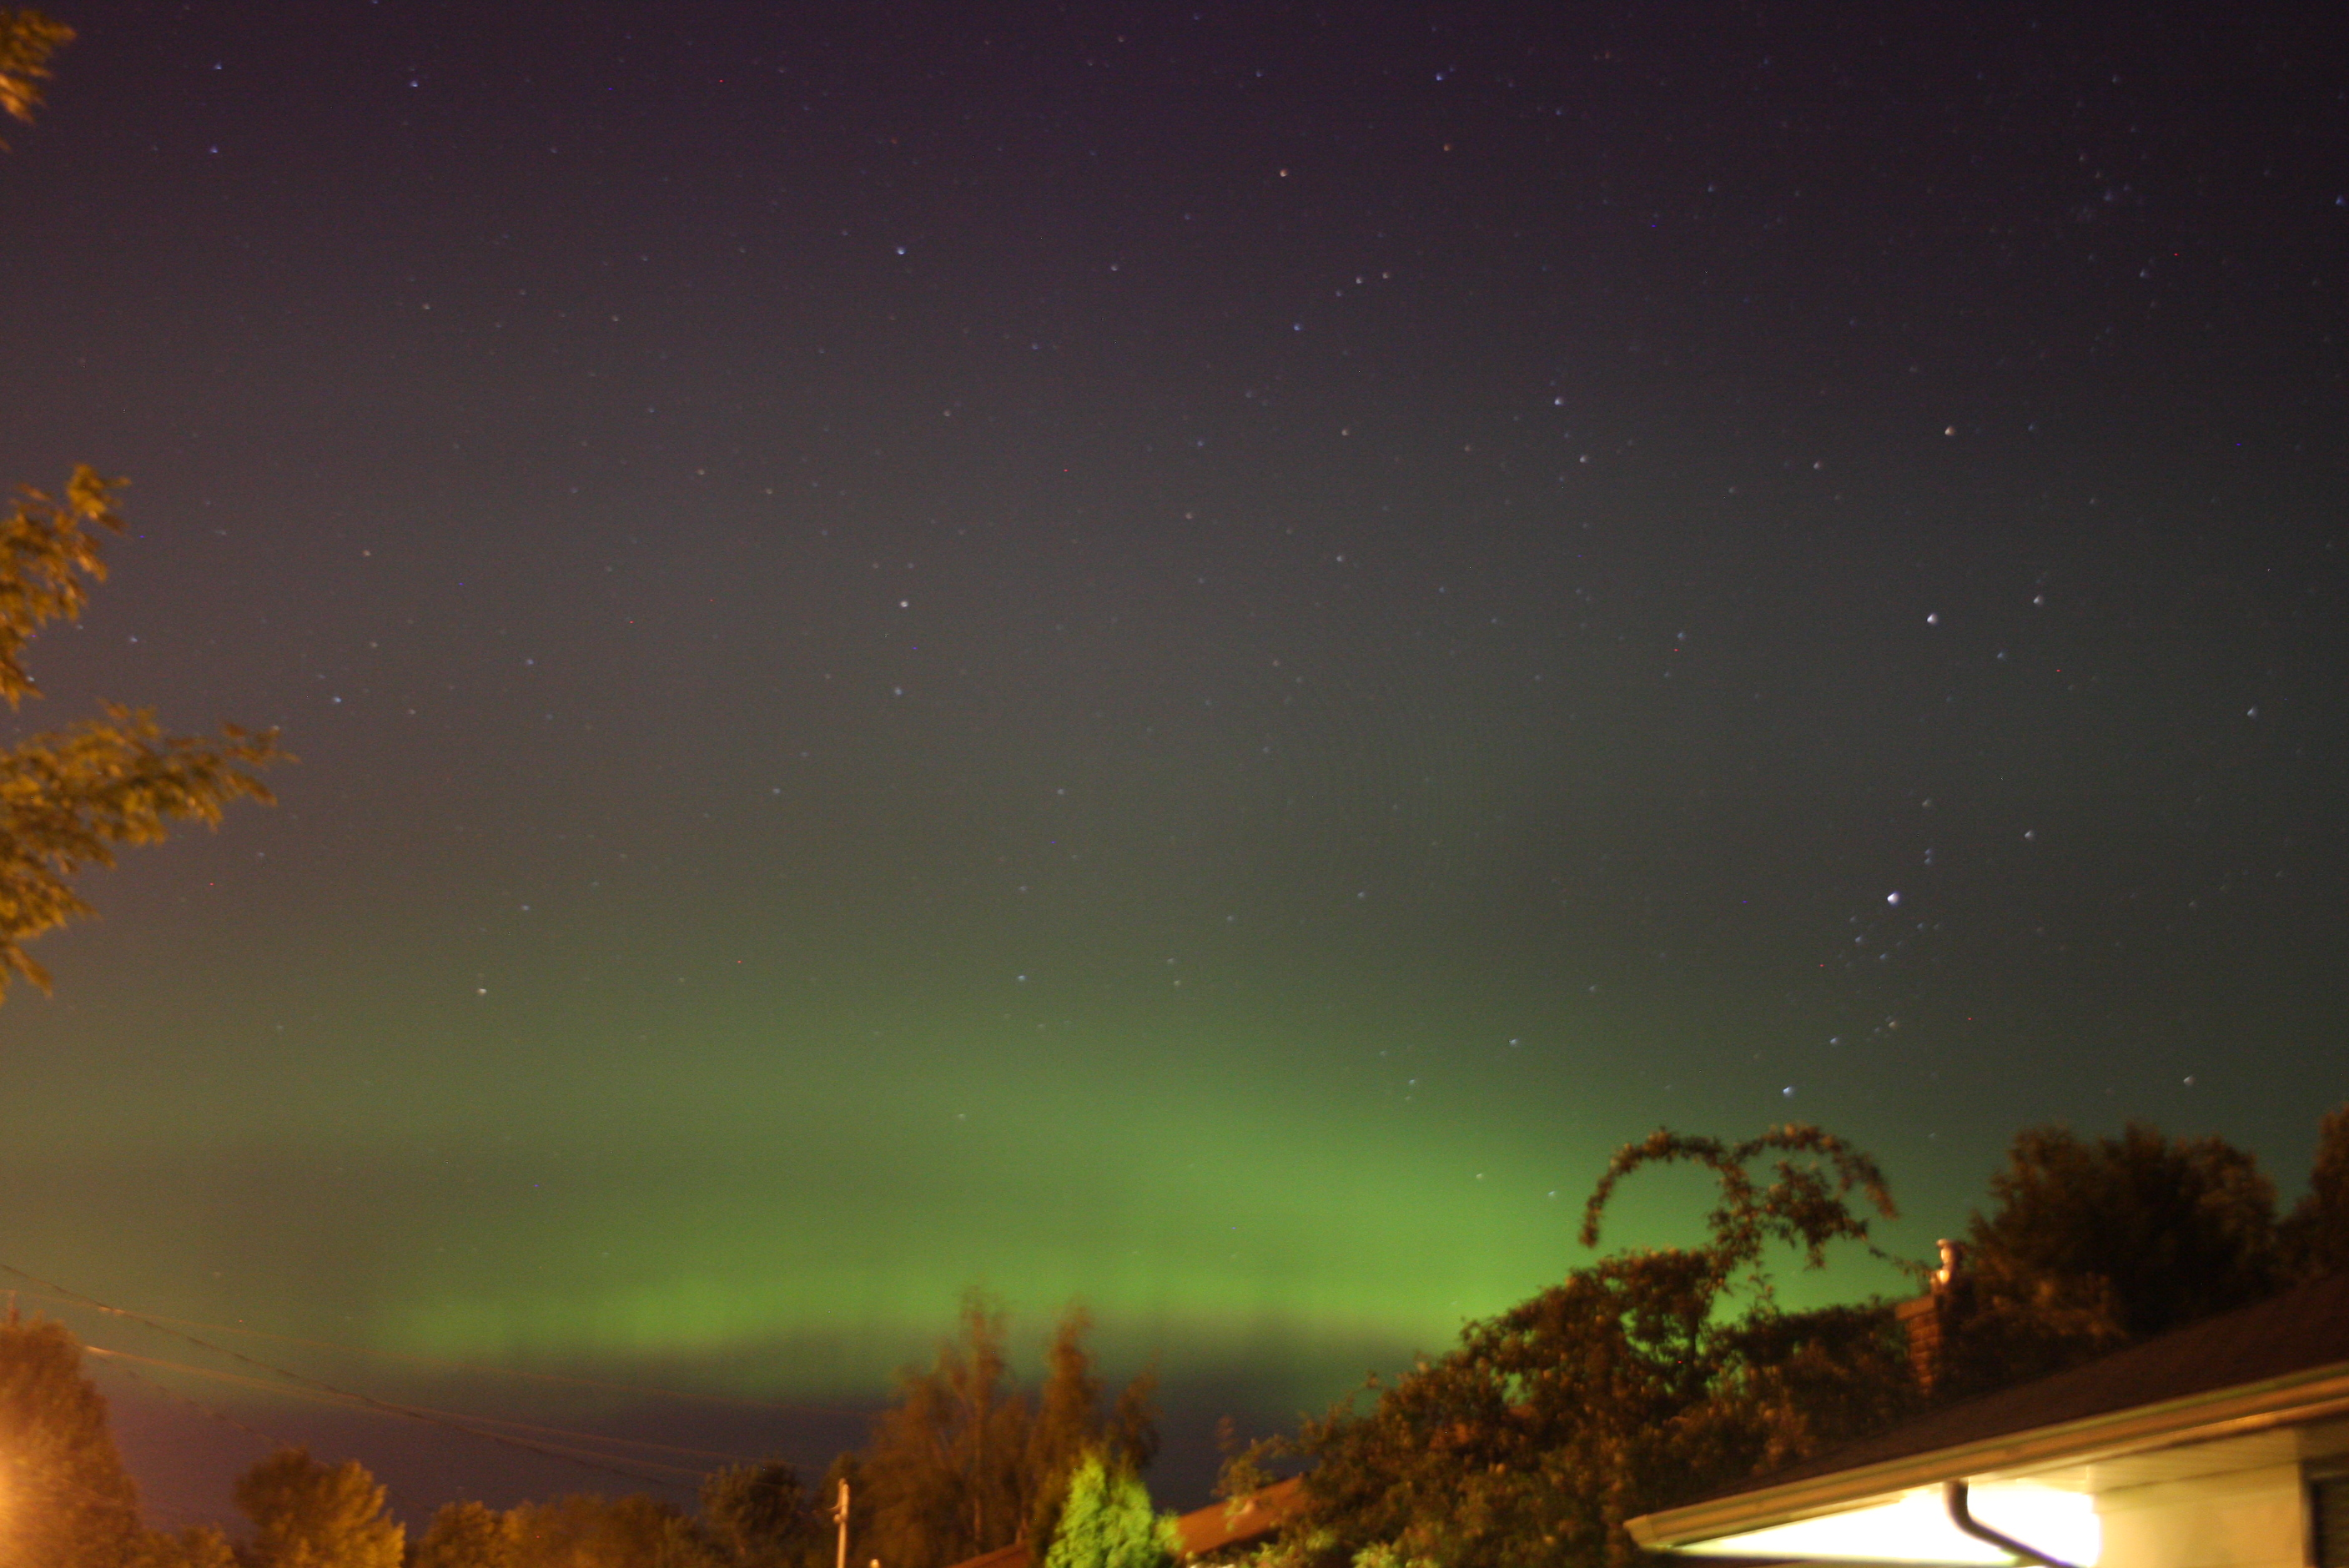 Northern Lights from my my front yard